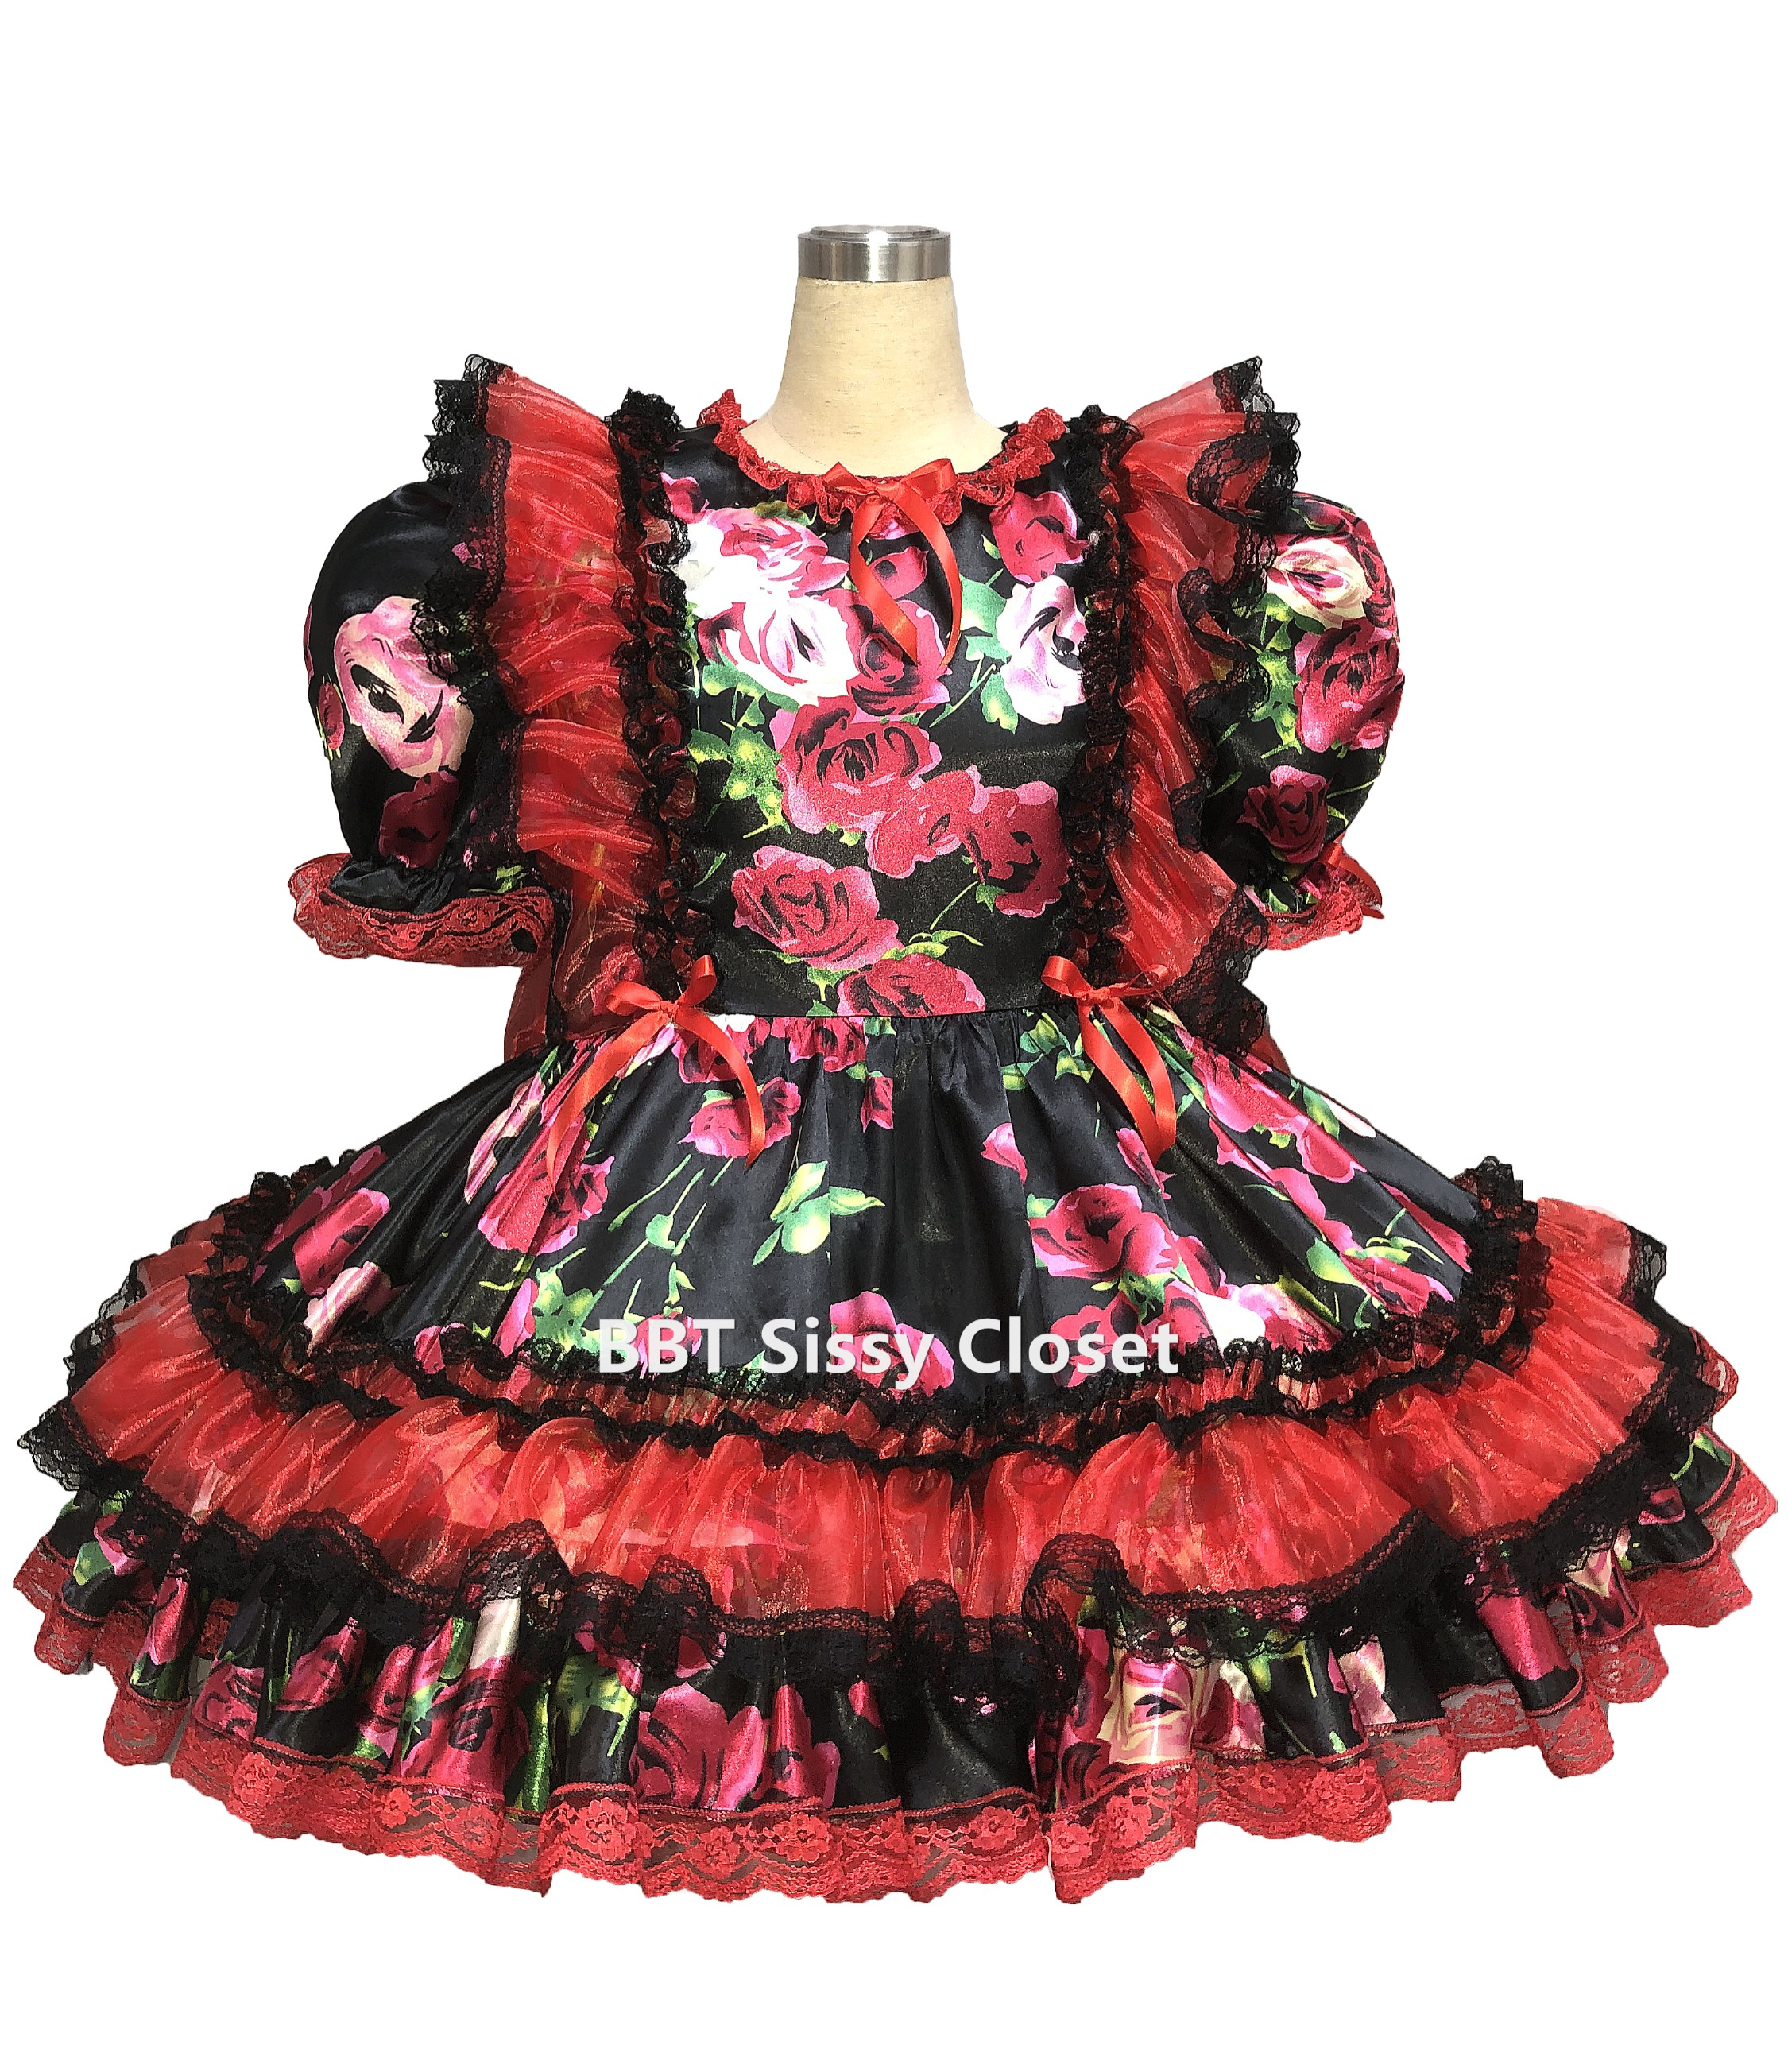 BBT Sissy Rosa Black Satin Ruffly Dress